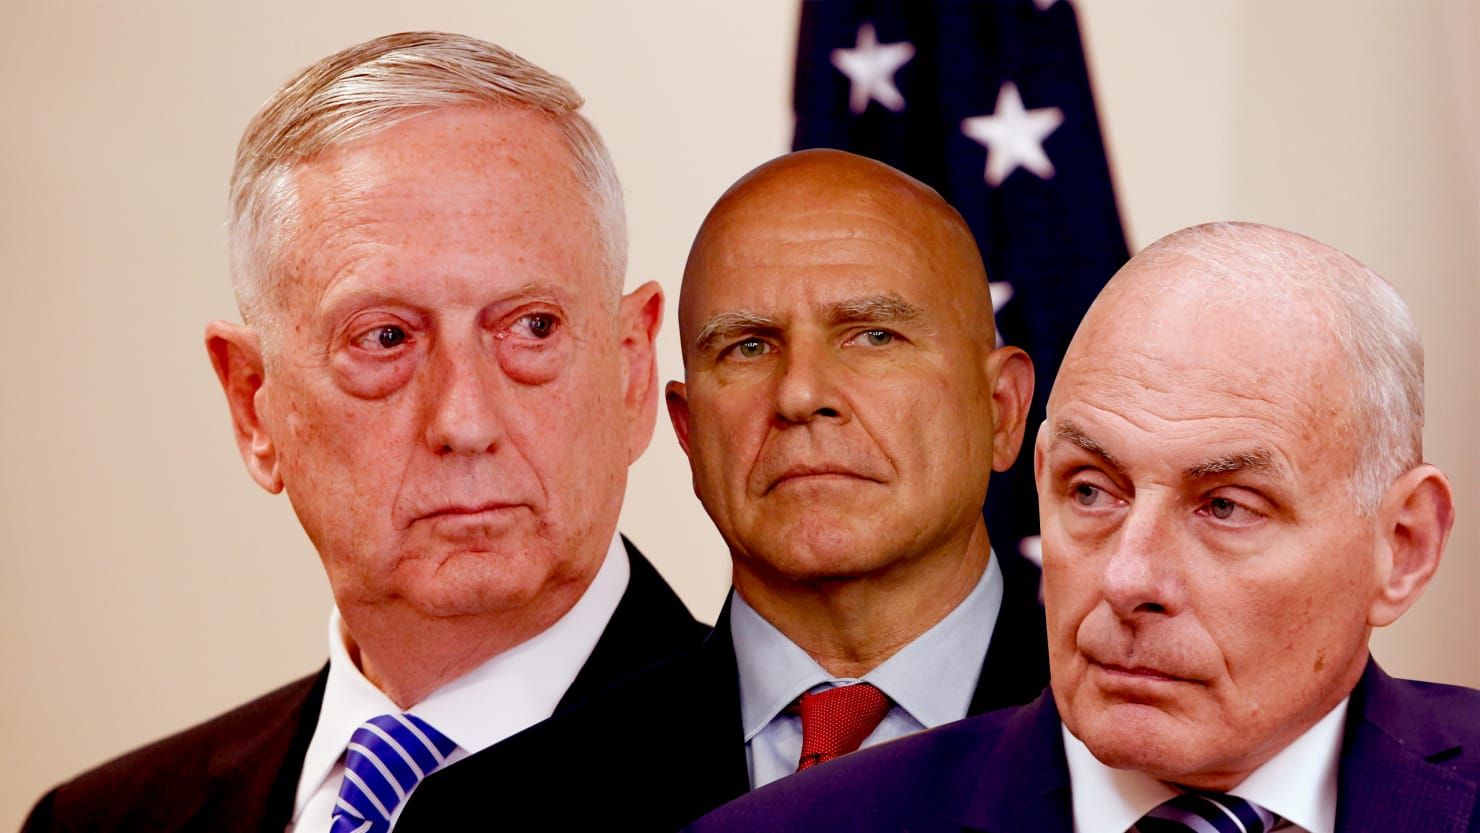 Image result for Mattis, McMaster, photos